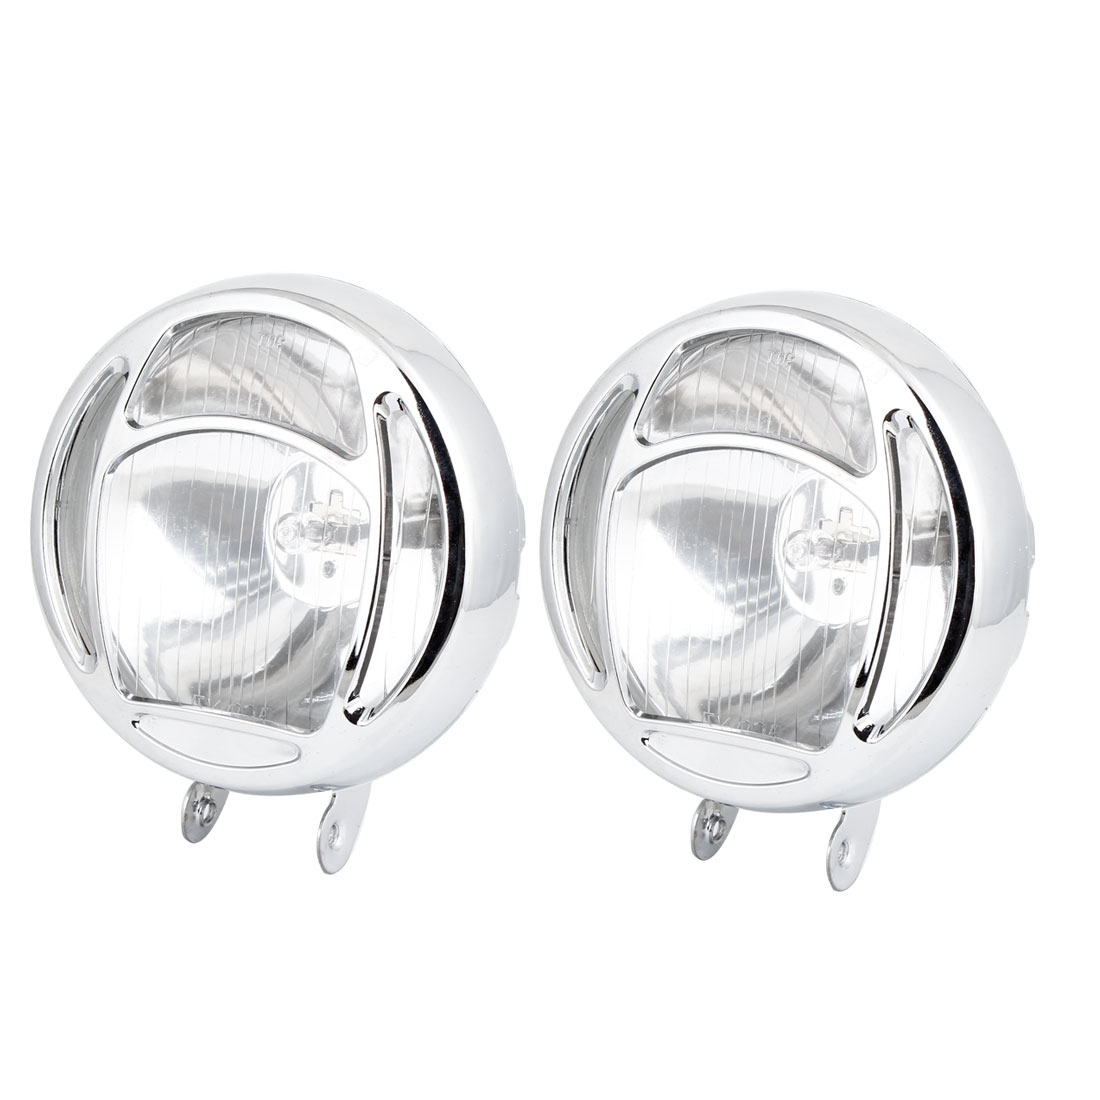 2 Pcs DC12V H3 55W Round Fog Lights Driving Lamps Warm White for Truck Car